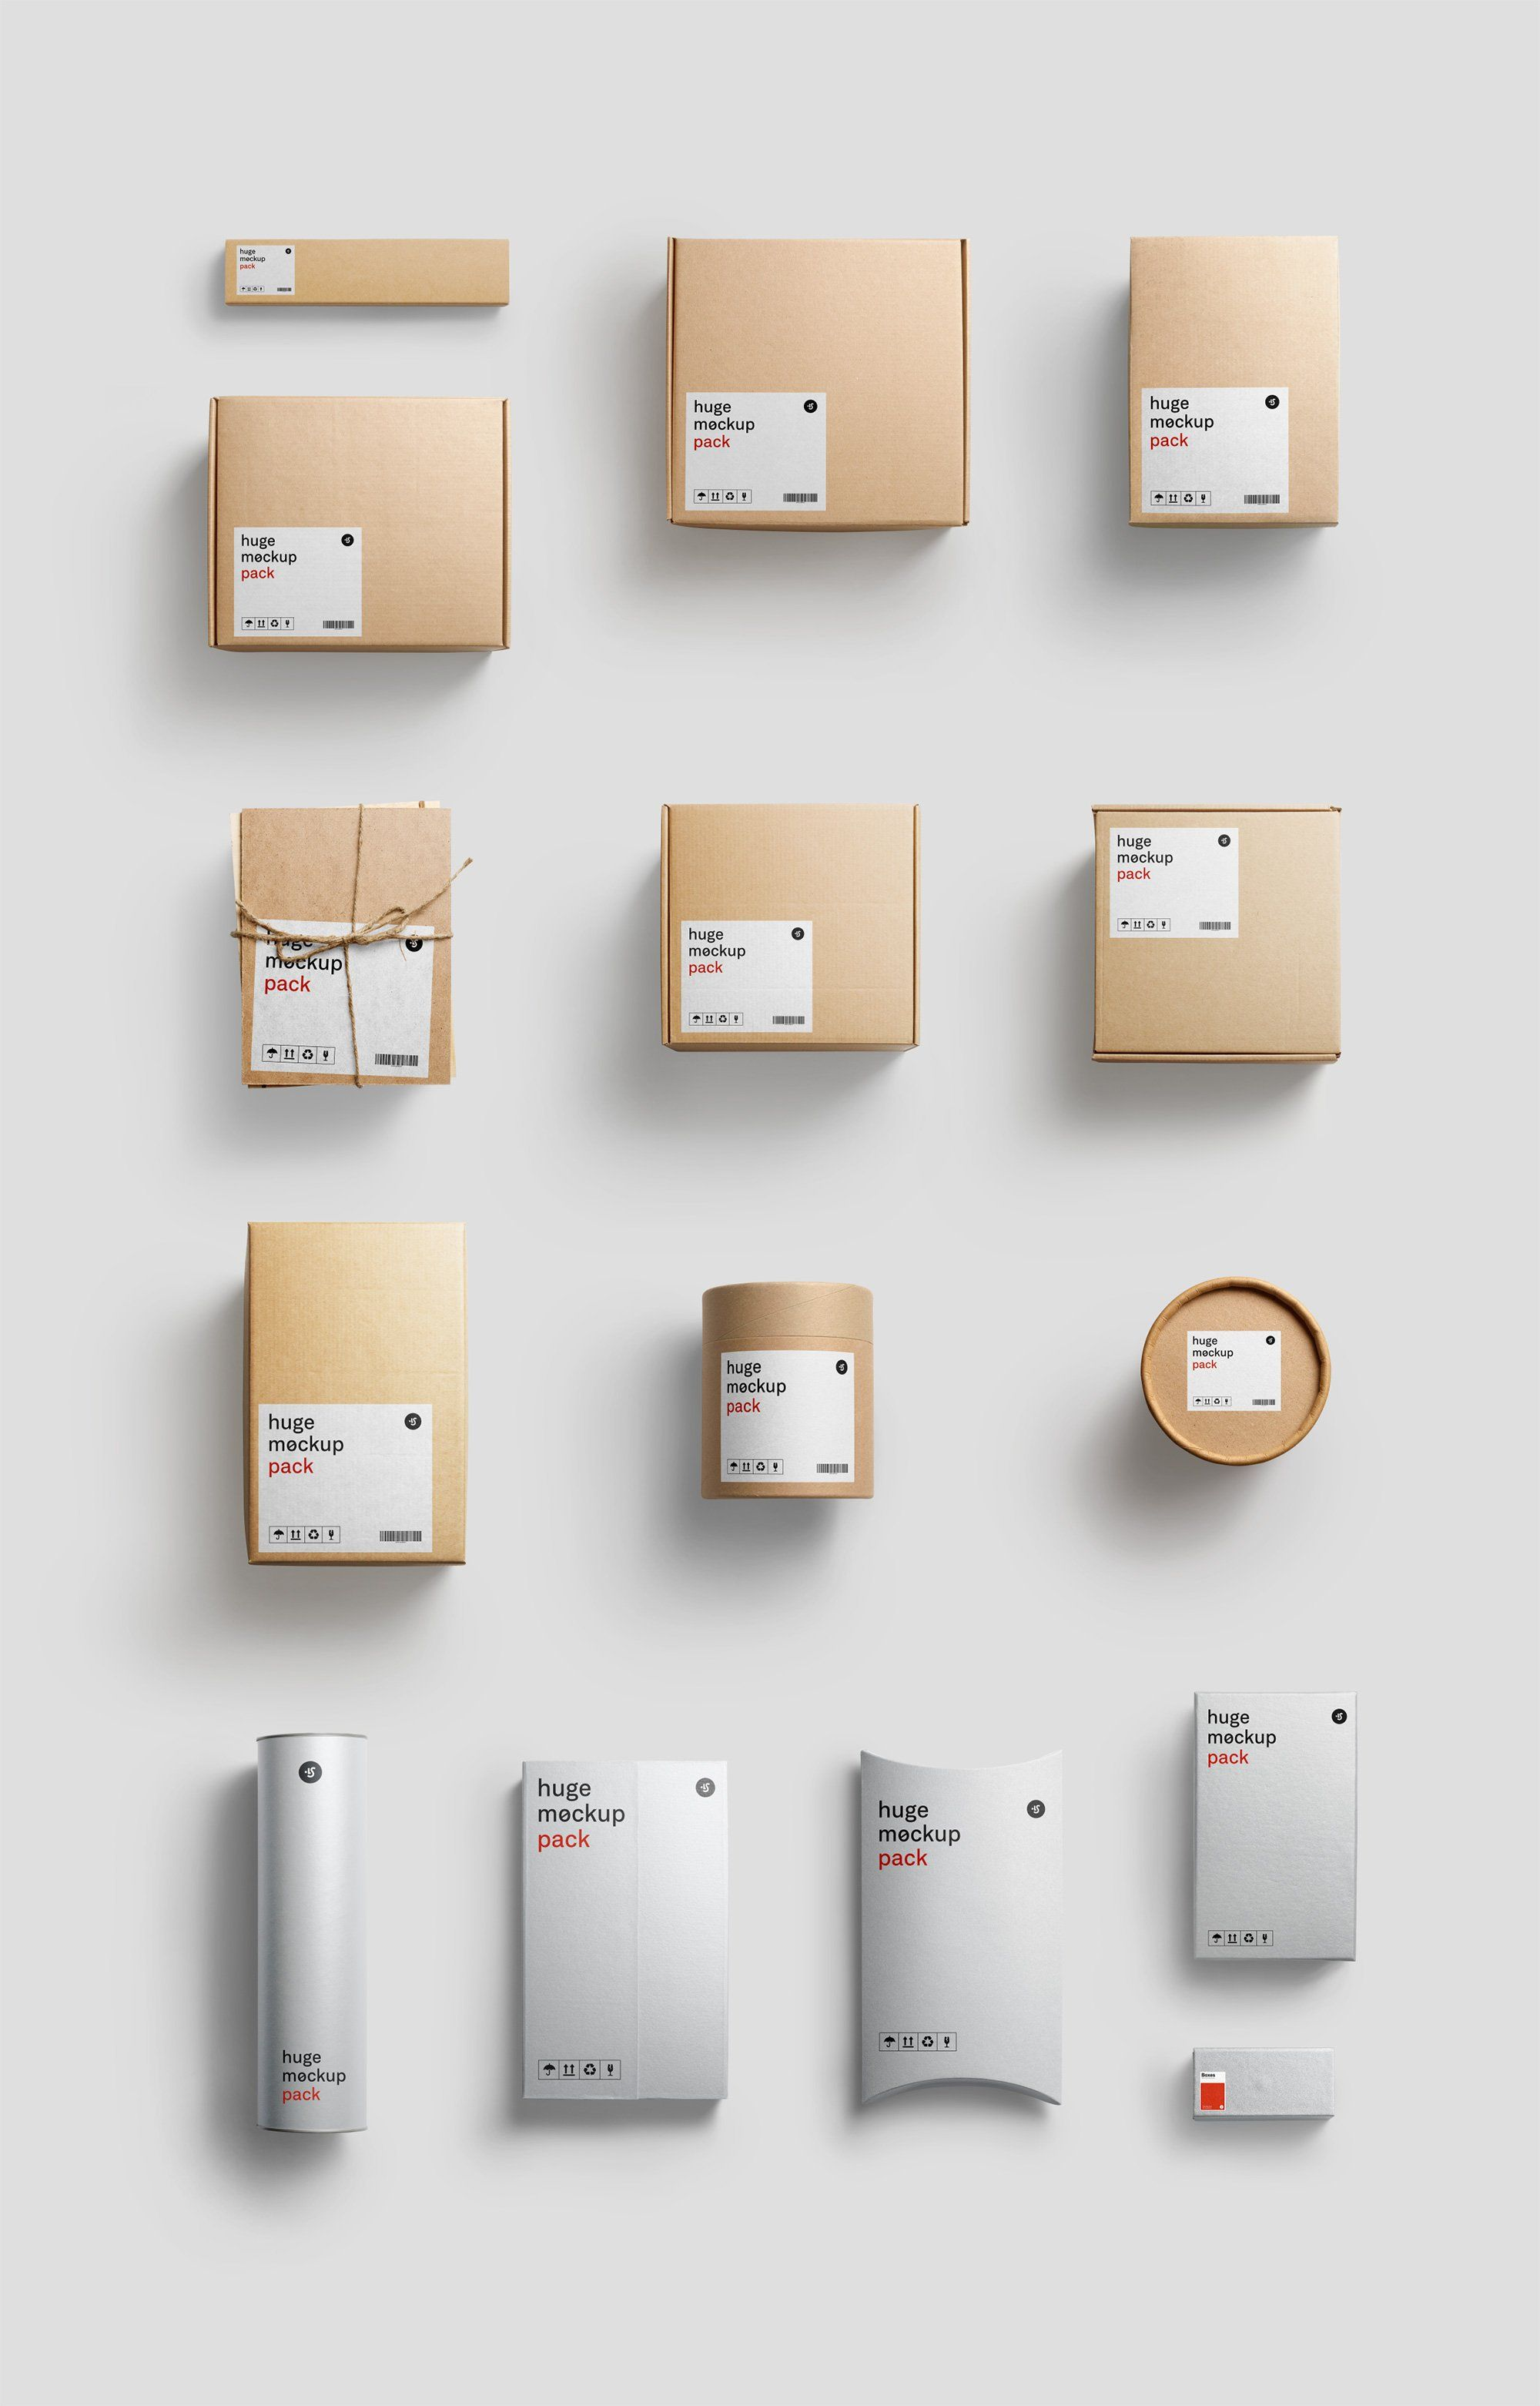 Download Packs Mockup Bundle Bpk Ad Ad Quality High Images Techniques Box Packaging Design Branding Design Packaging Packaging Labels Design